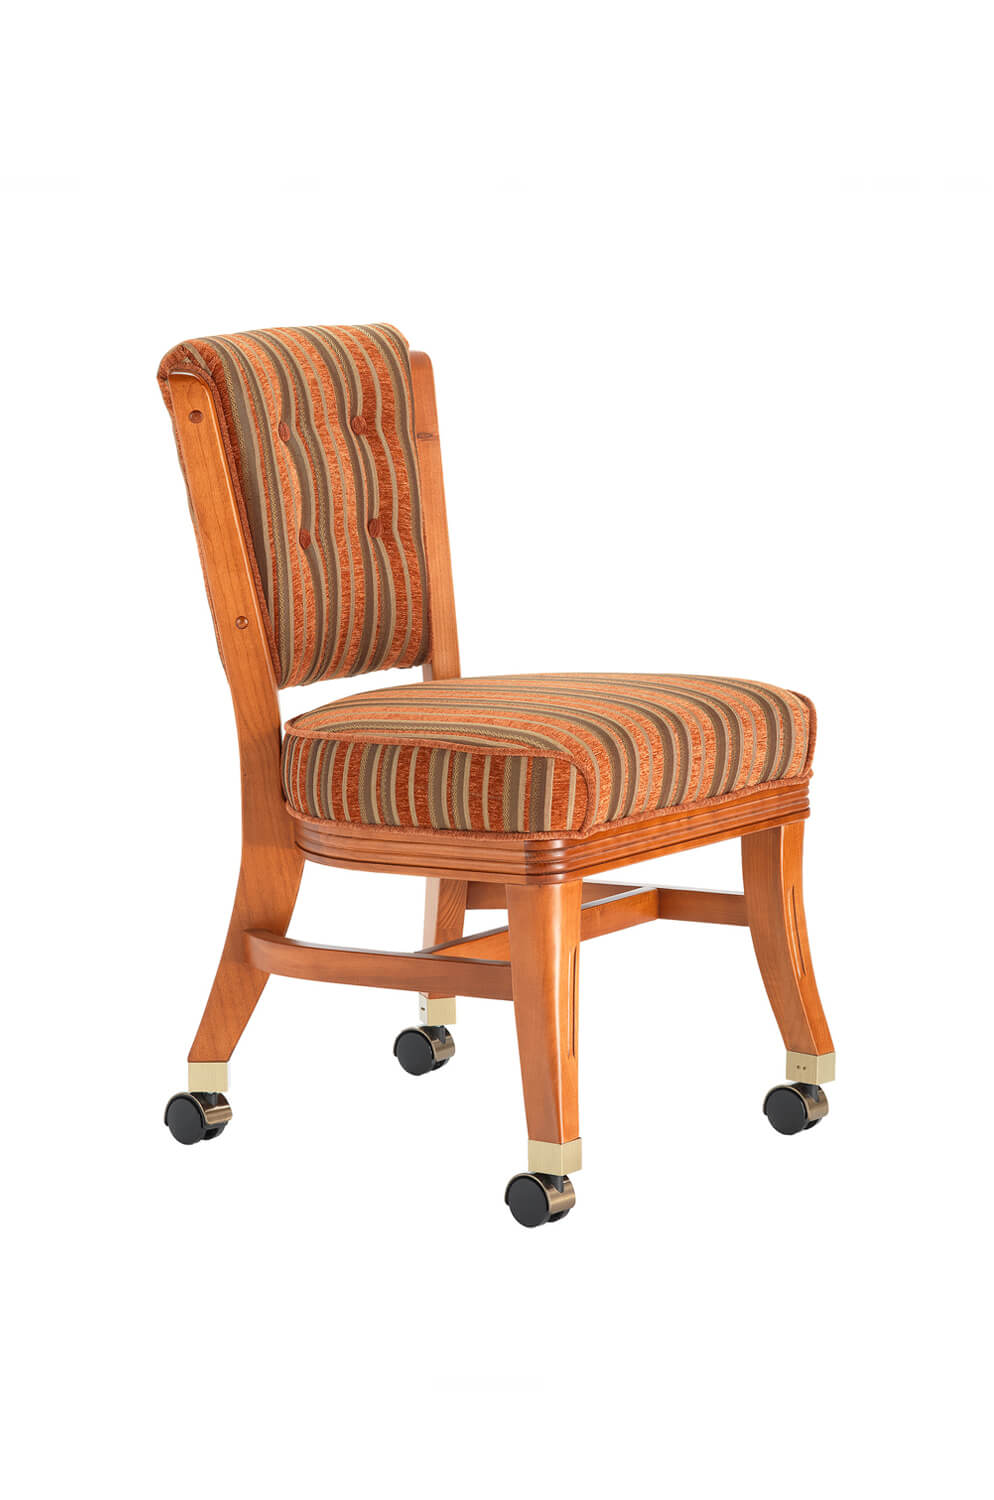 Darafeev S 960 Maple Wood, Padded Dining Room Chairs With Casters